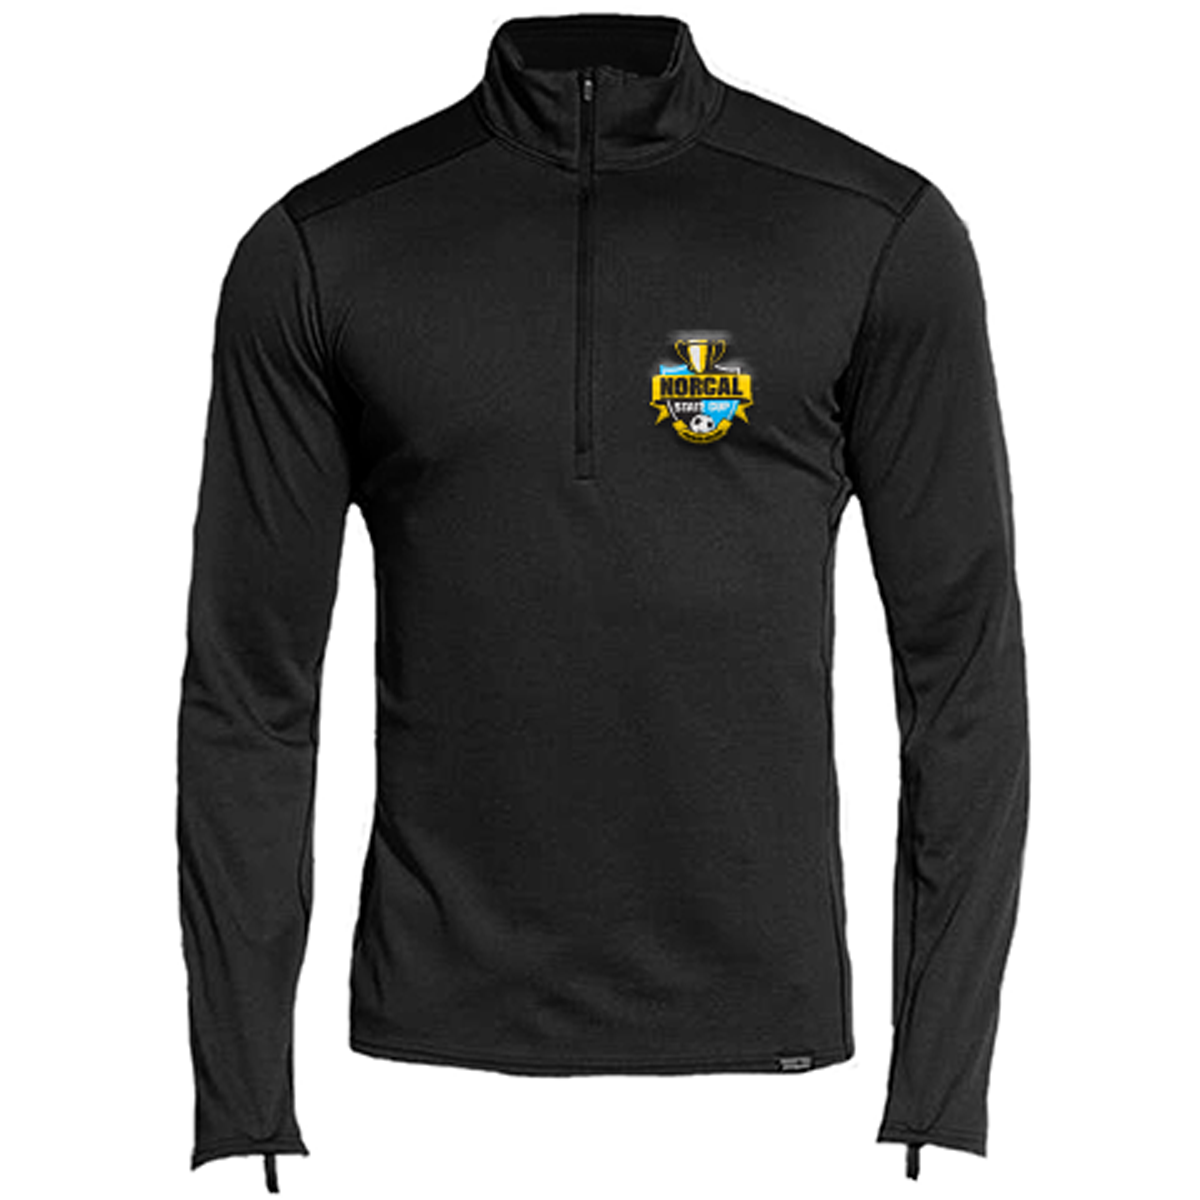 Embroidered Admiral Pro Stretch 1/4 Zip Pullover-2XL